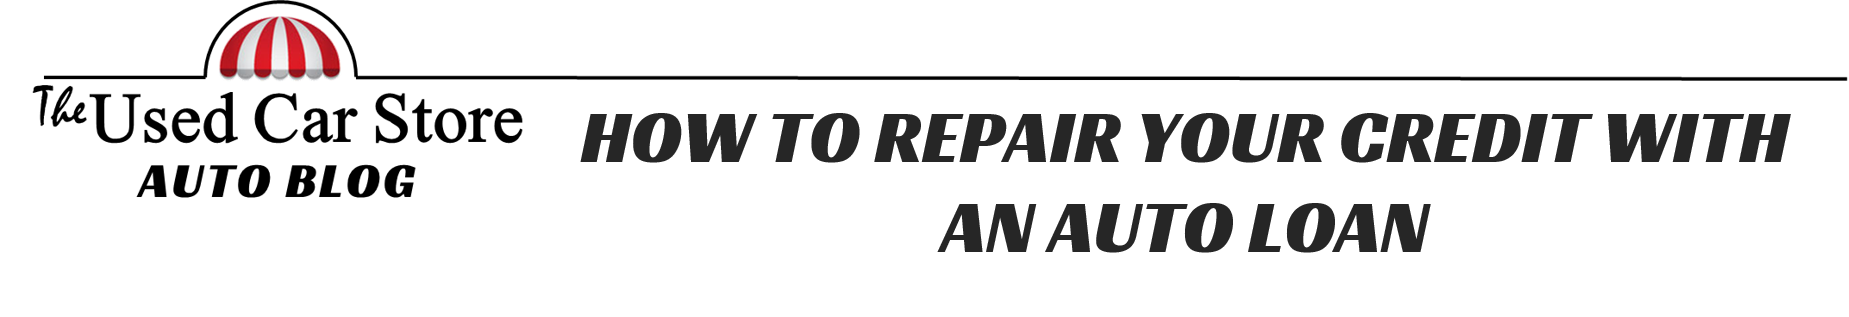 How To Repair Your Credit With An Auto Loan Title